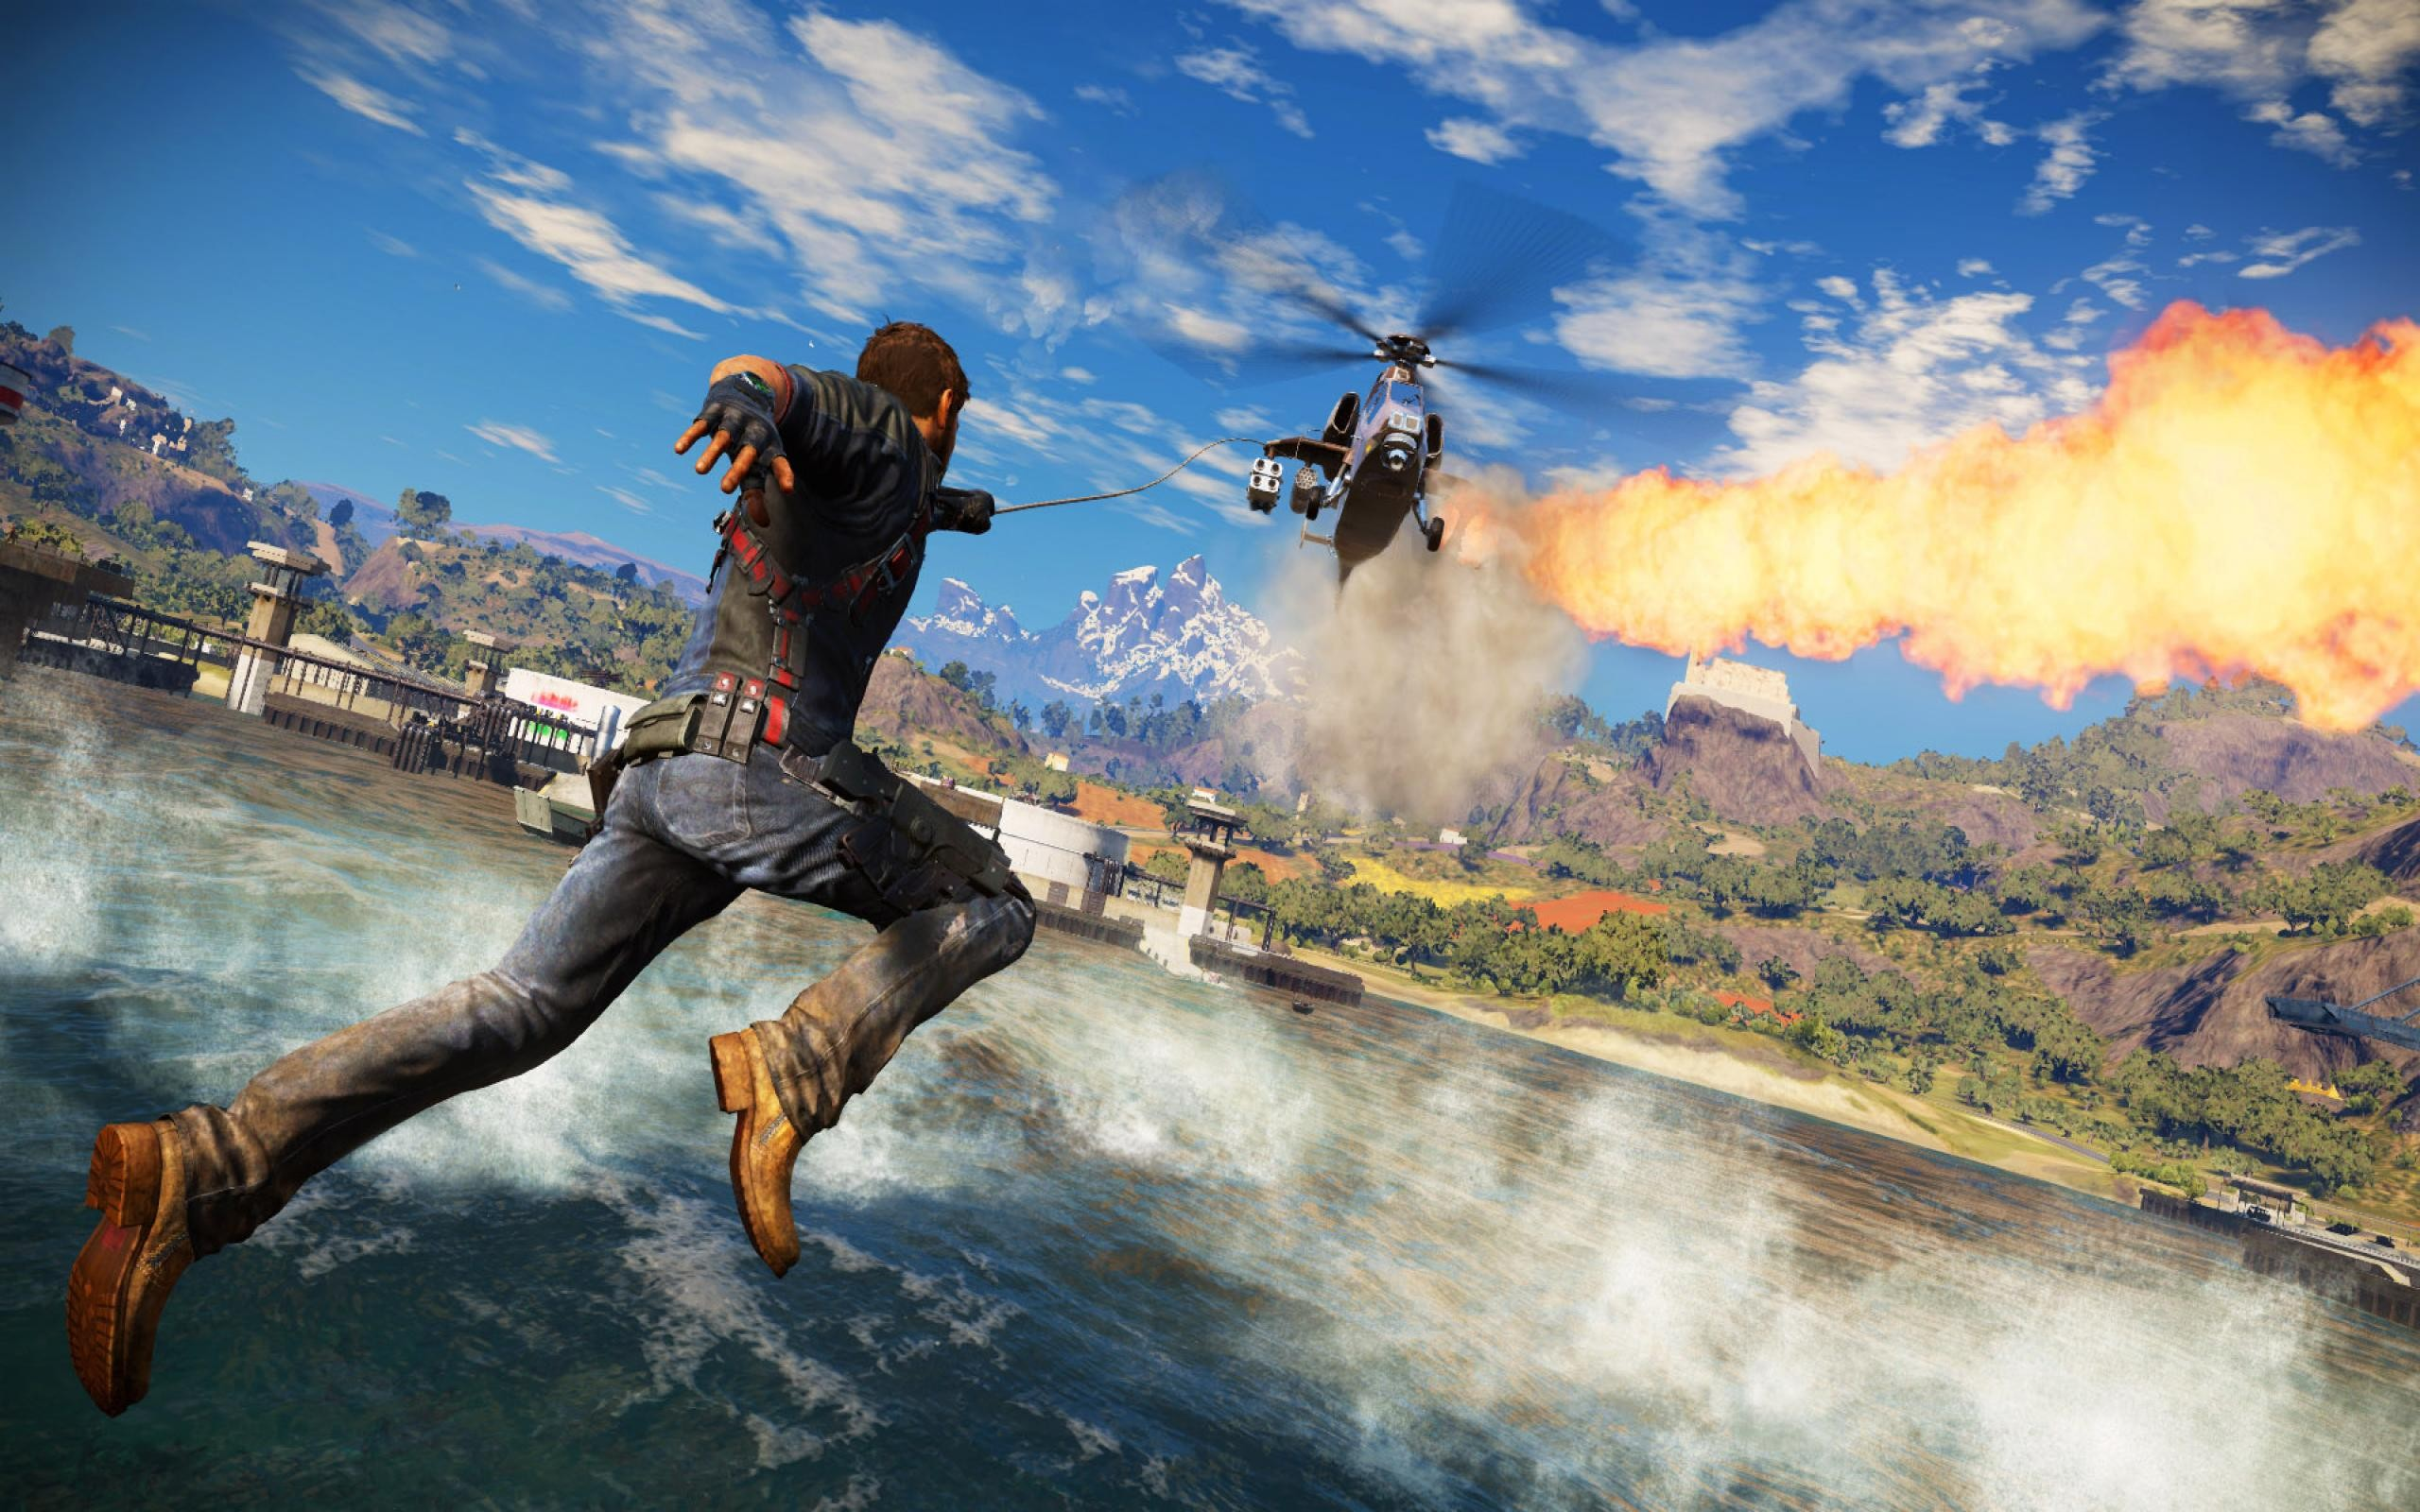 Just Cause 3 Wallpaper: Just Cause 3, HD Games, 4k Wallpapers, Images, Backgrounds